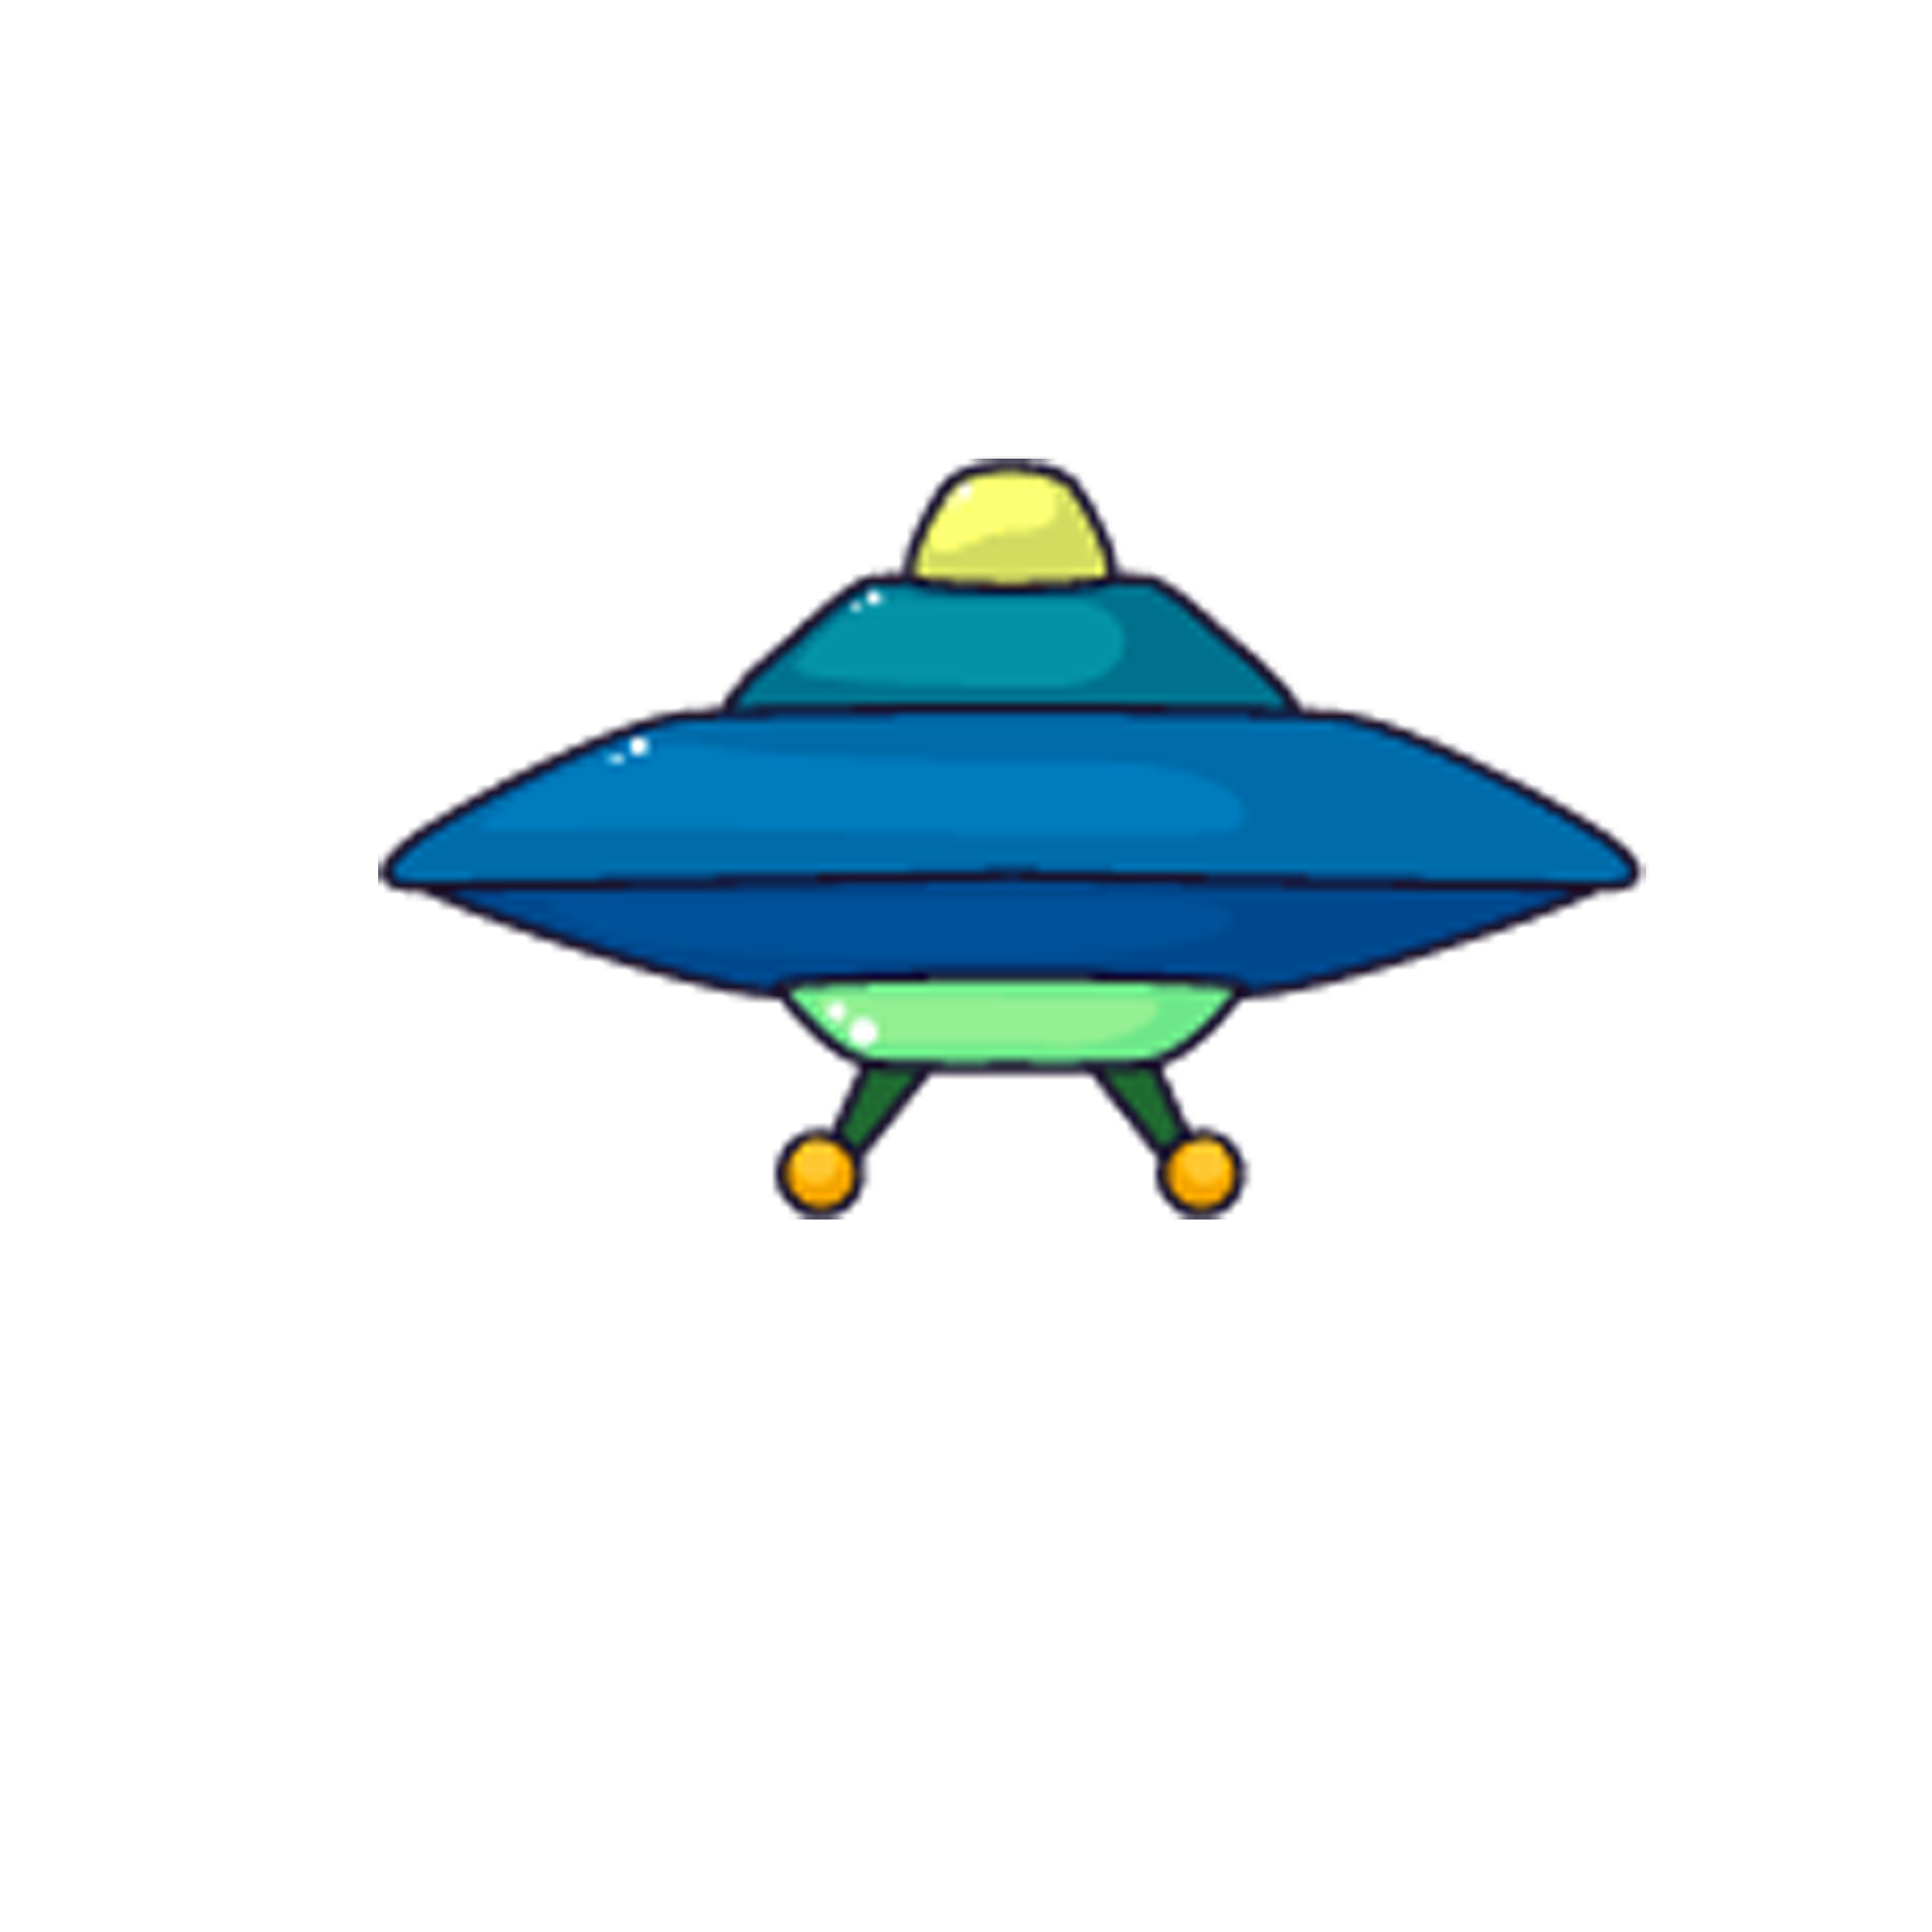 Spacecraft download clip art. Spaceship clipart cool spaceship